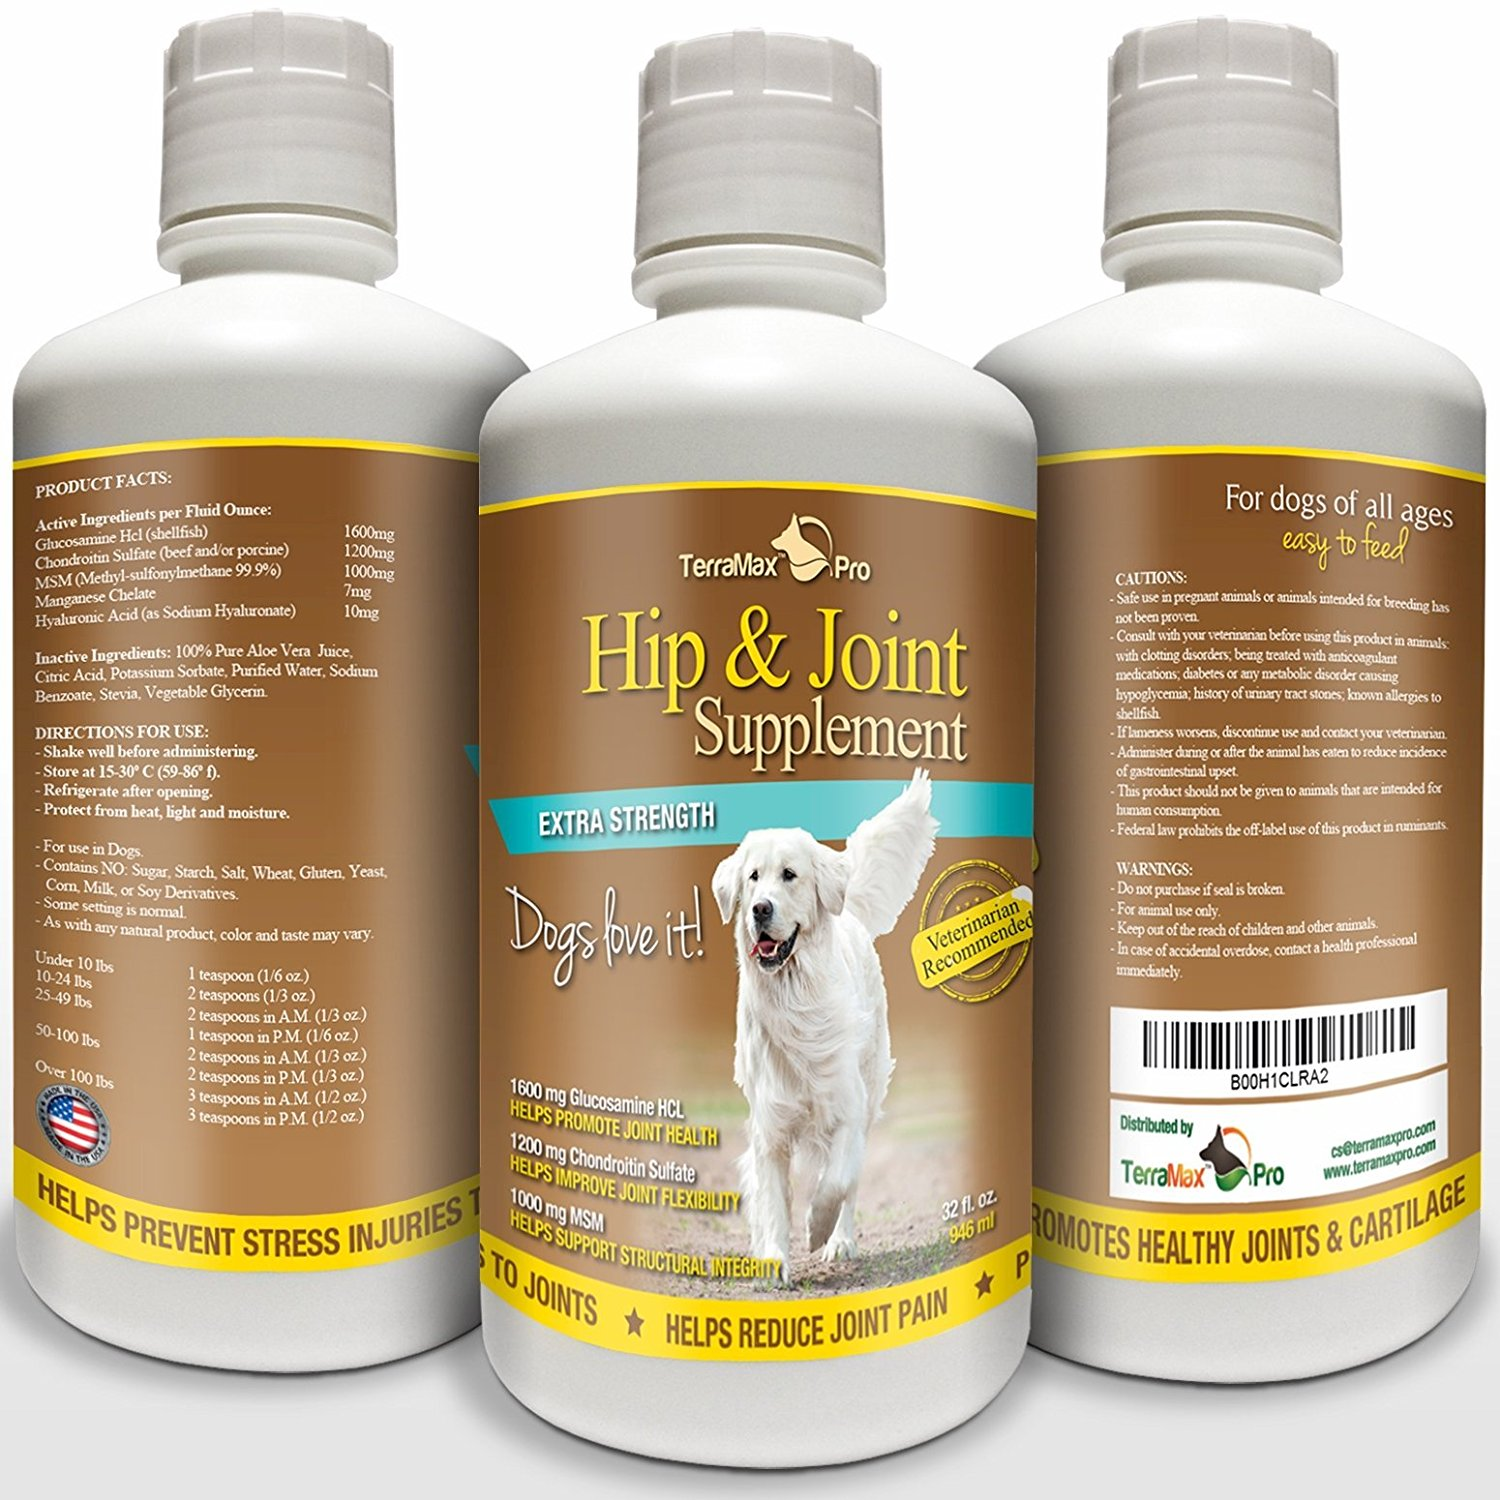 TerraMax Pro Hip and Joint Supplement for Dogs Liquid Glucosamine with Chondroitin MSM and Hyaluronic Acid 32 oz